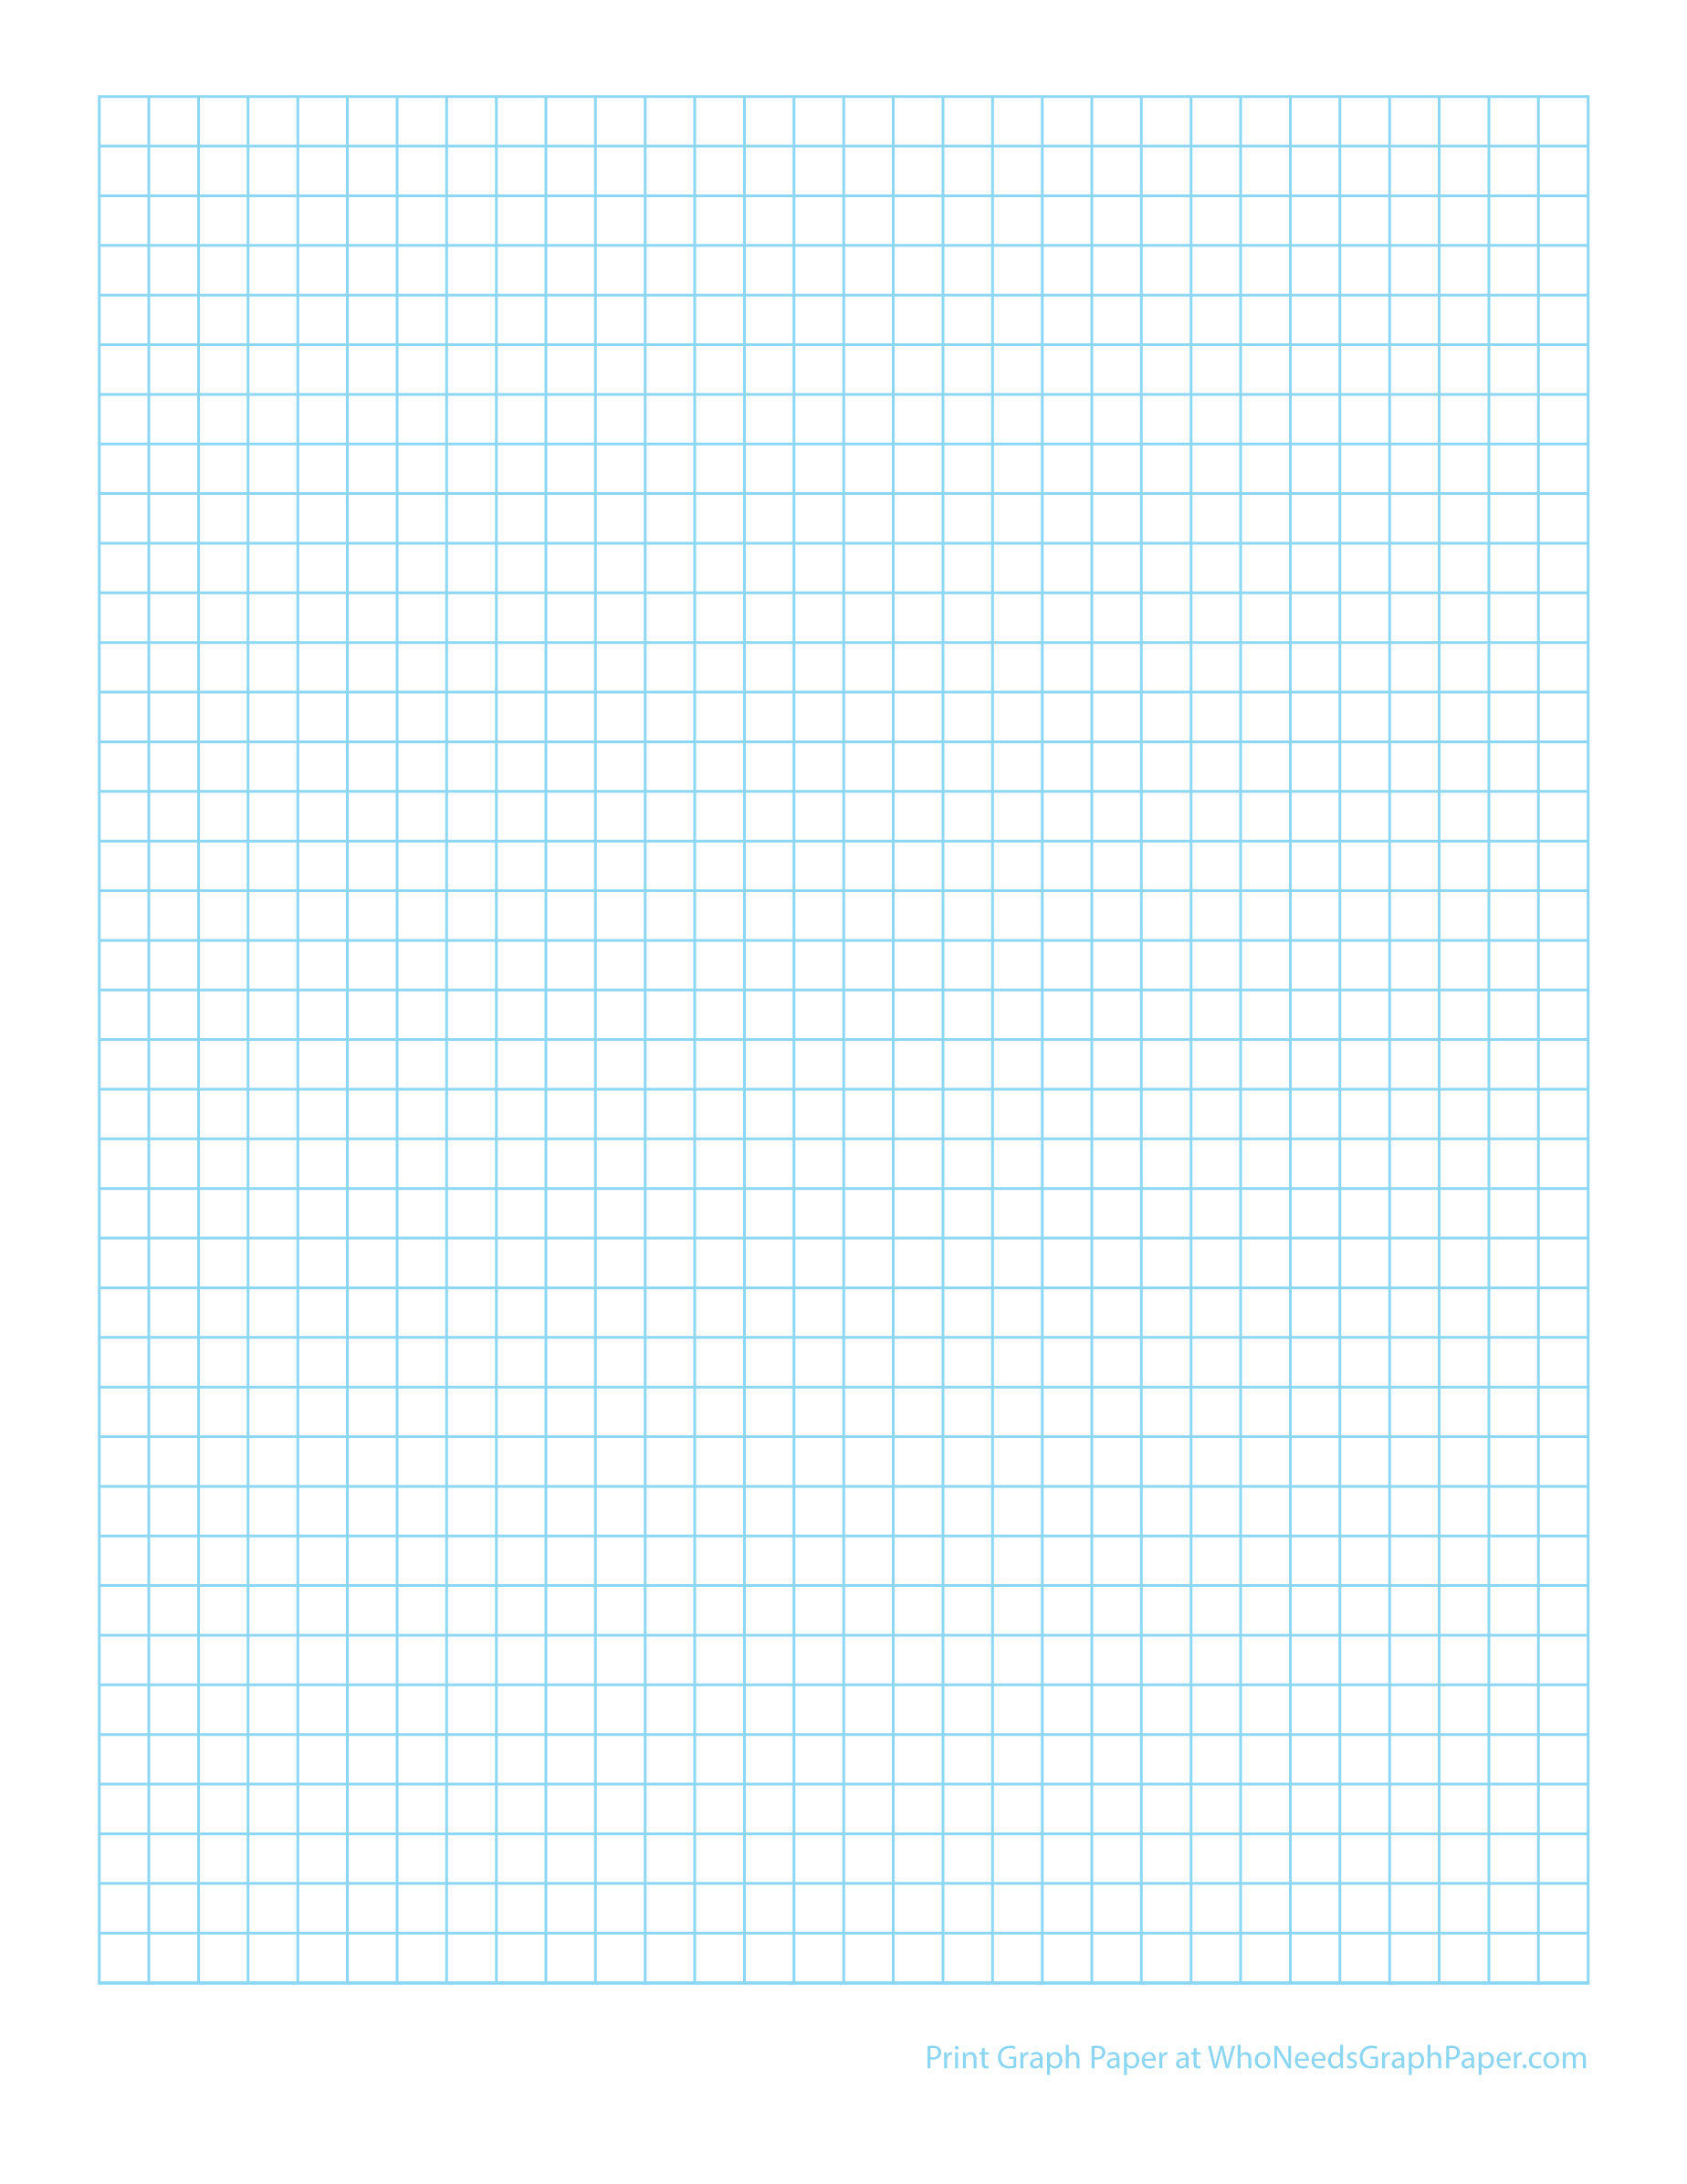 worksheet Grid Paper Print print graph paper